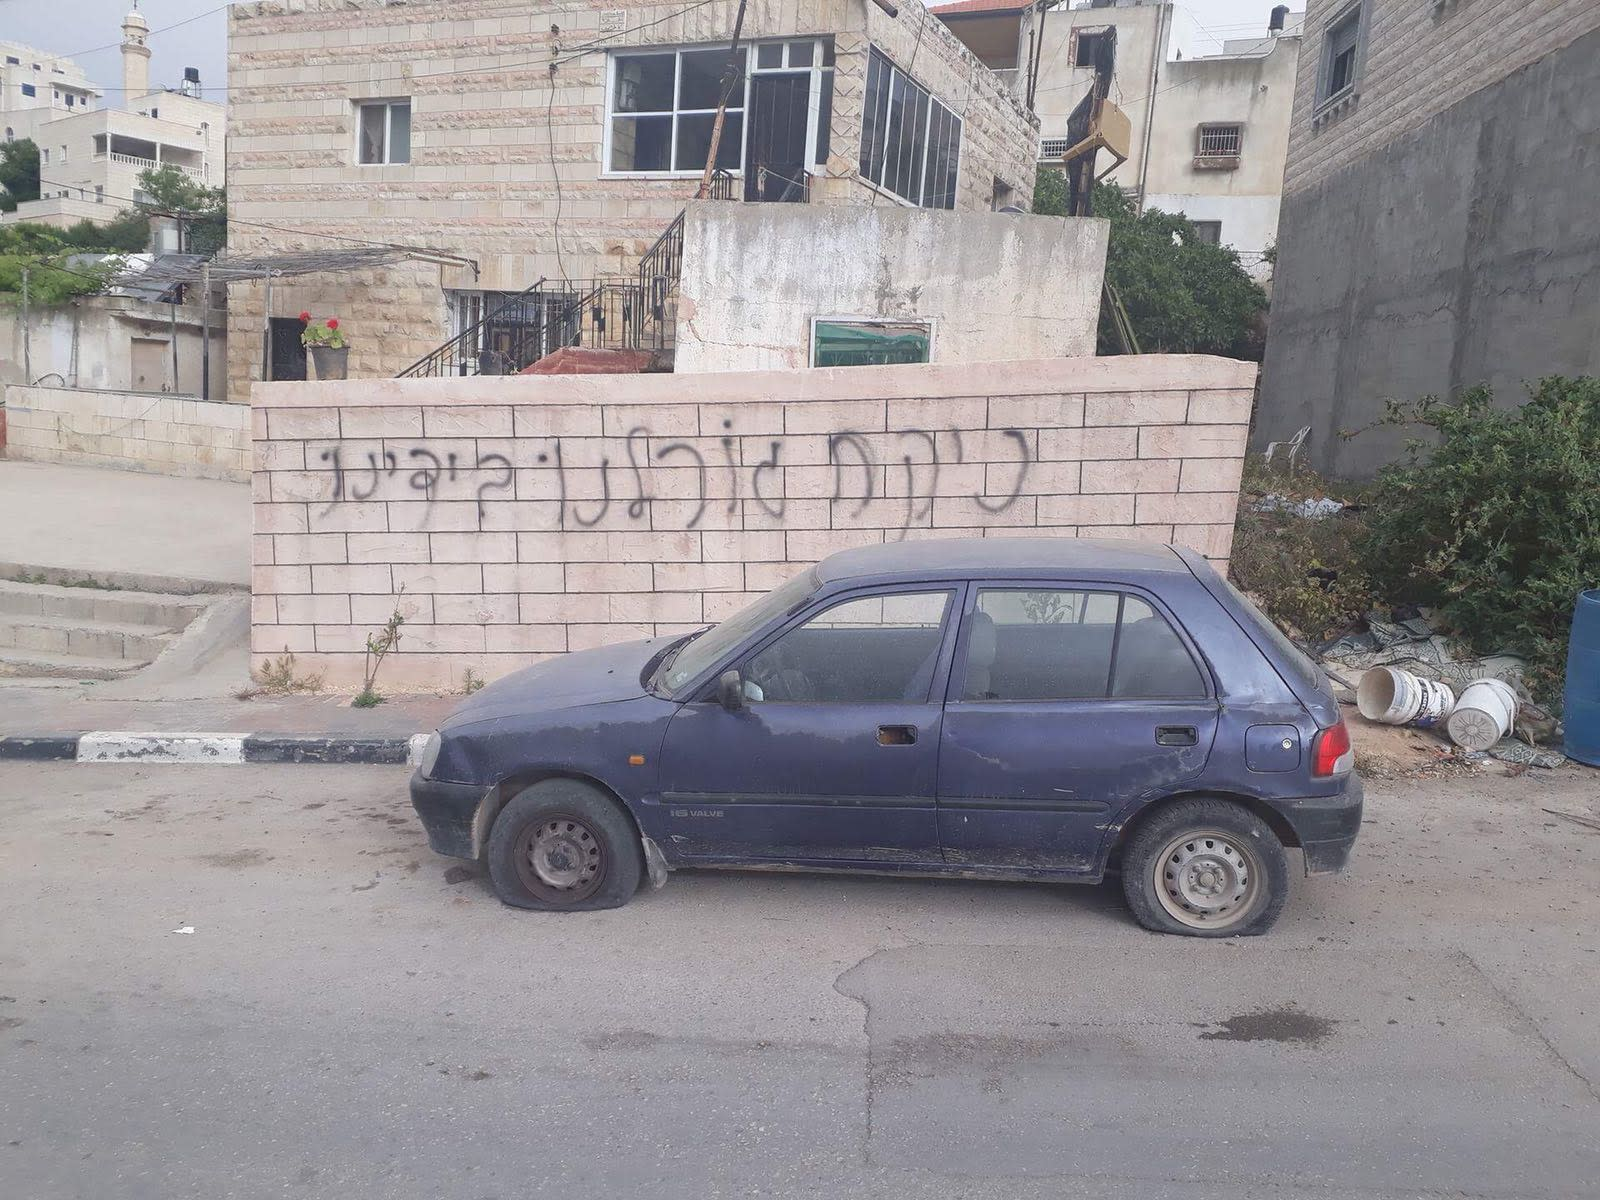 "'Price tag' attack: ""Let's take our fate into our own hands"" spray-painted on a stone wall in the village of Dir Ammar in the Binyamin district (COURTESY POLICE SPOKESMAN'S UNIT)"